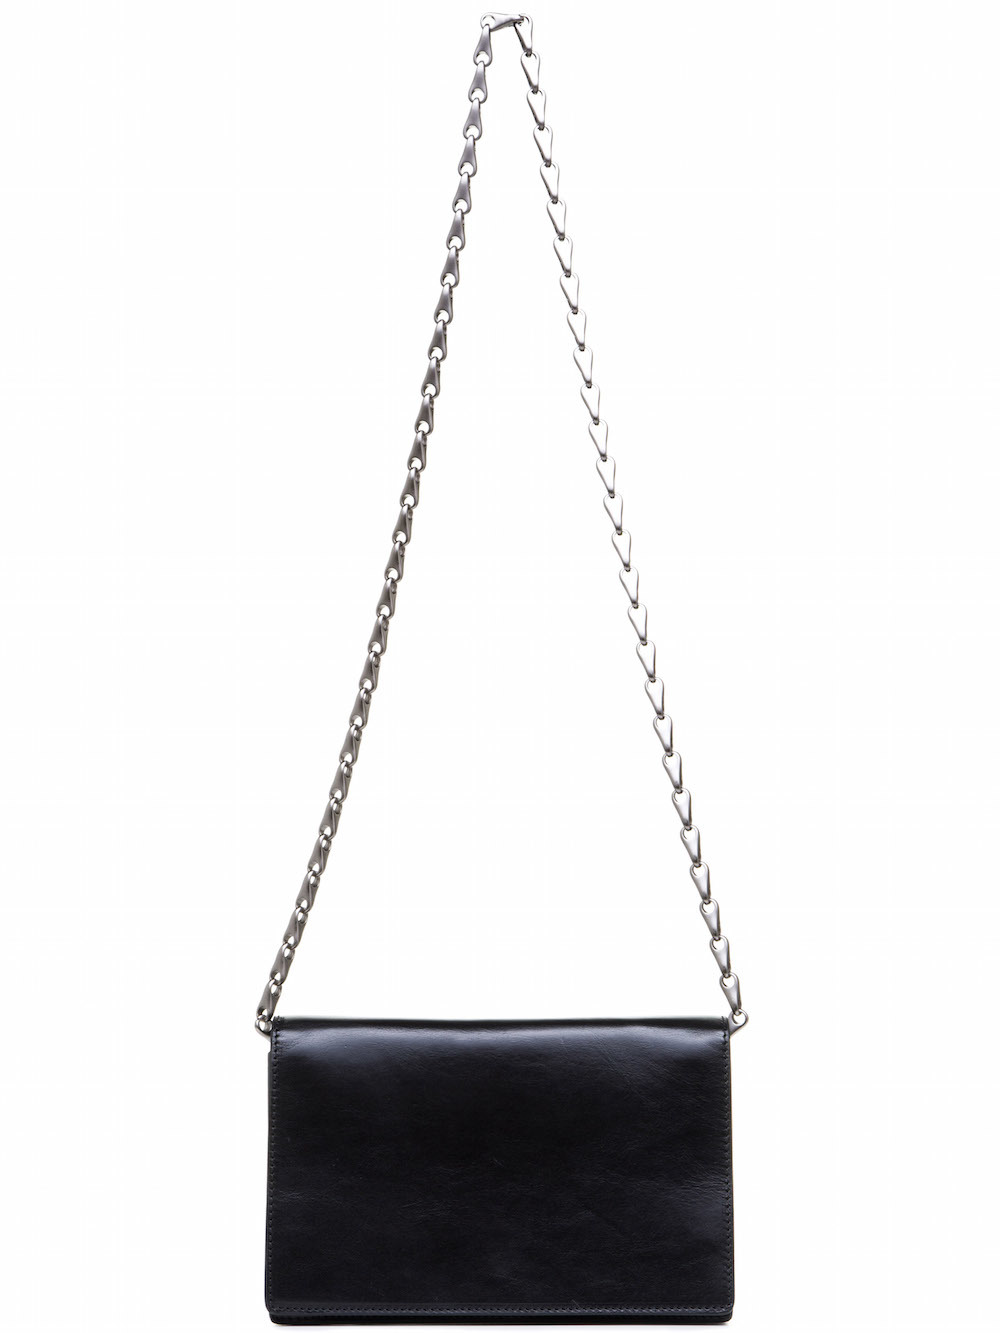 RICK OWENS SMALL SHOULDER BAG IN BLACK LEATHER